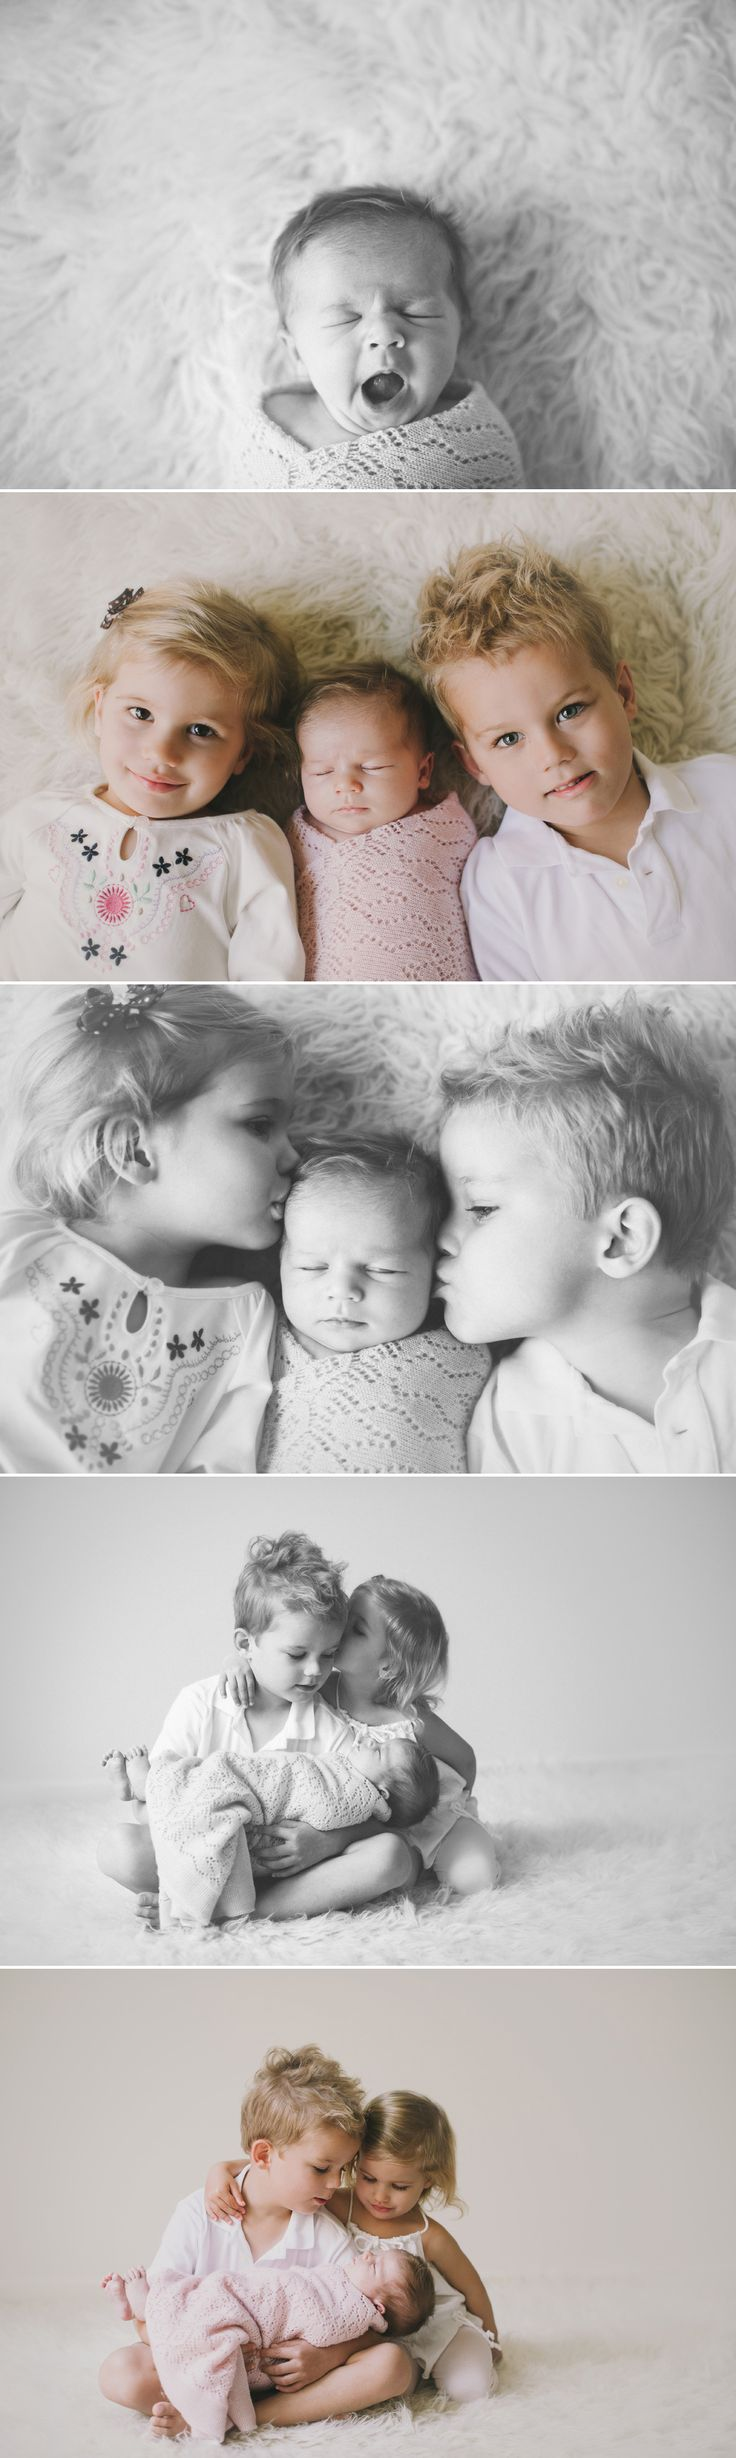 Adorable family photo shoot capturing the newest addition to the family | The photos of the baby with siblings are especially precious